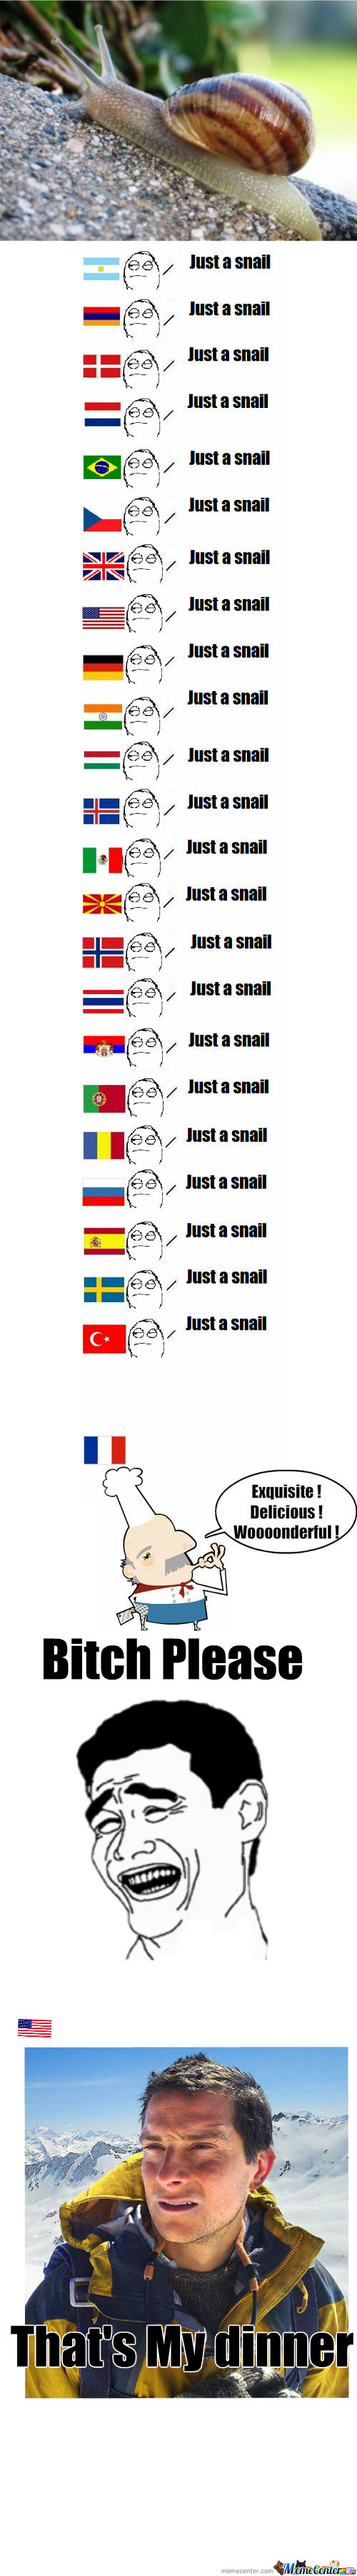 [RMX] Difference Between Countries